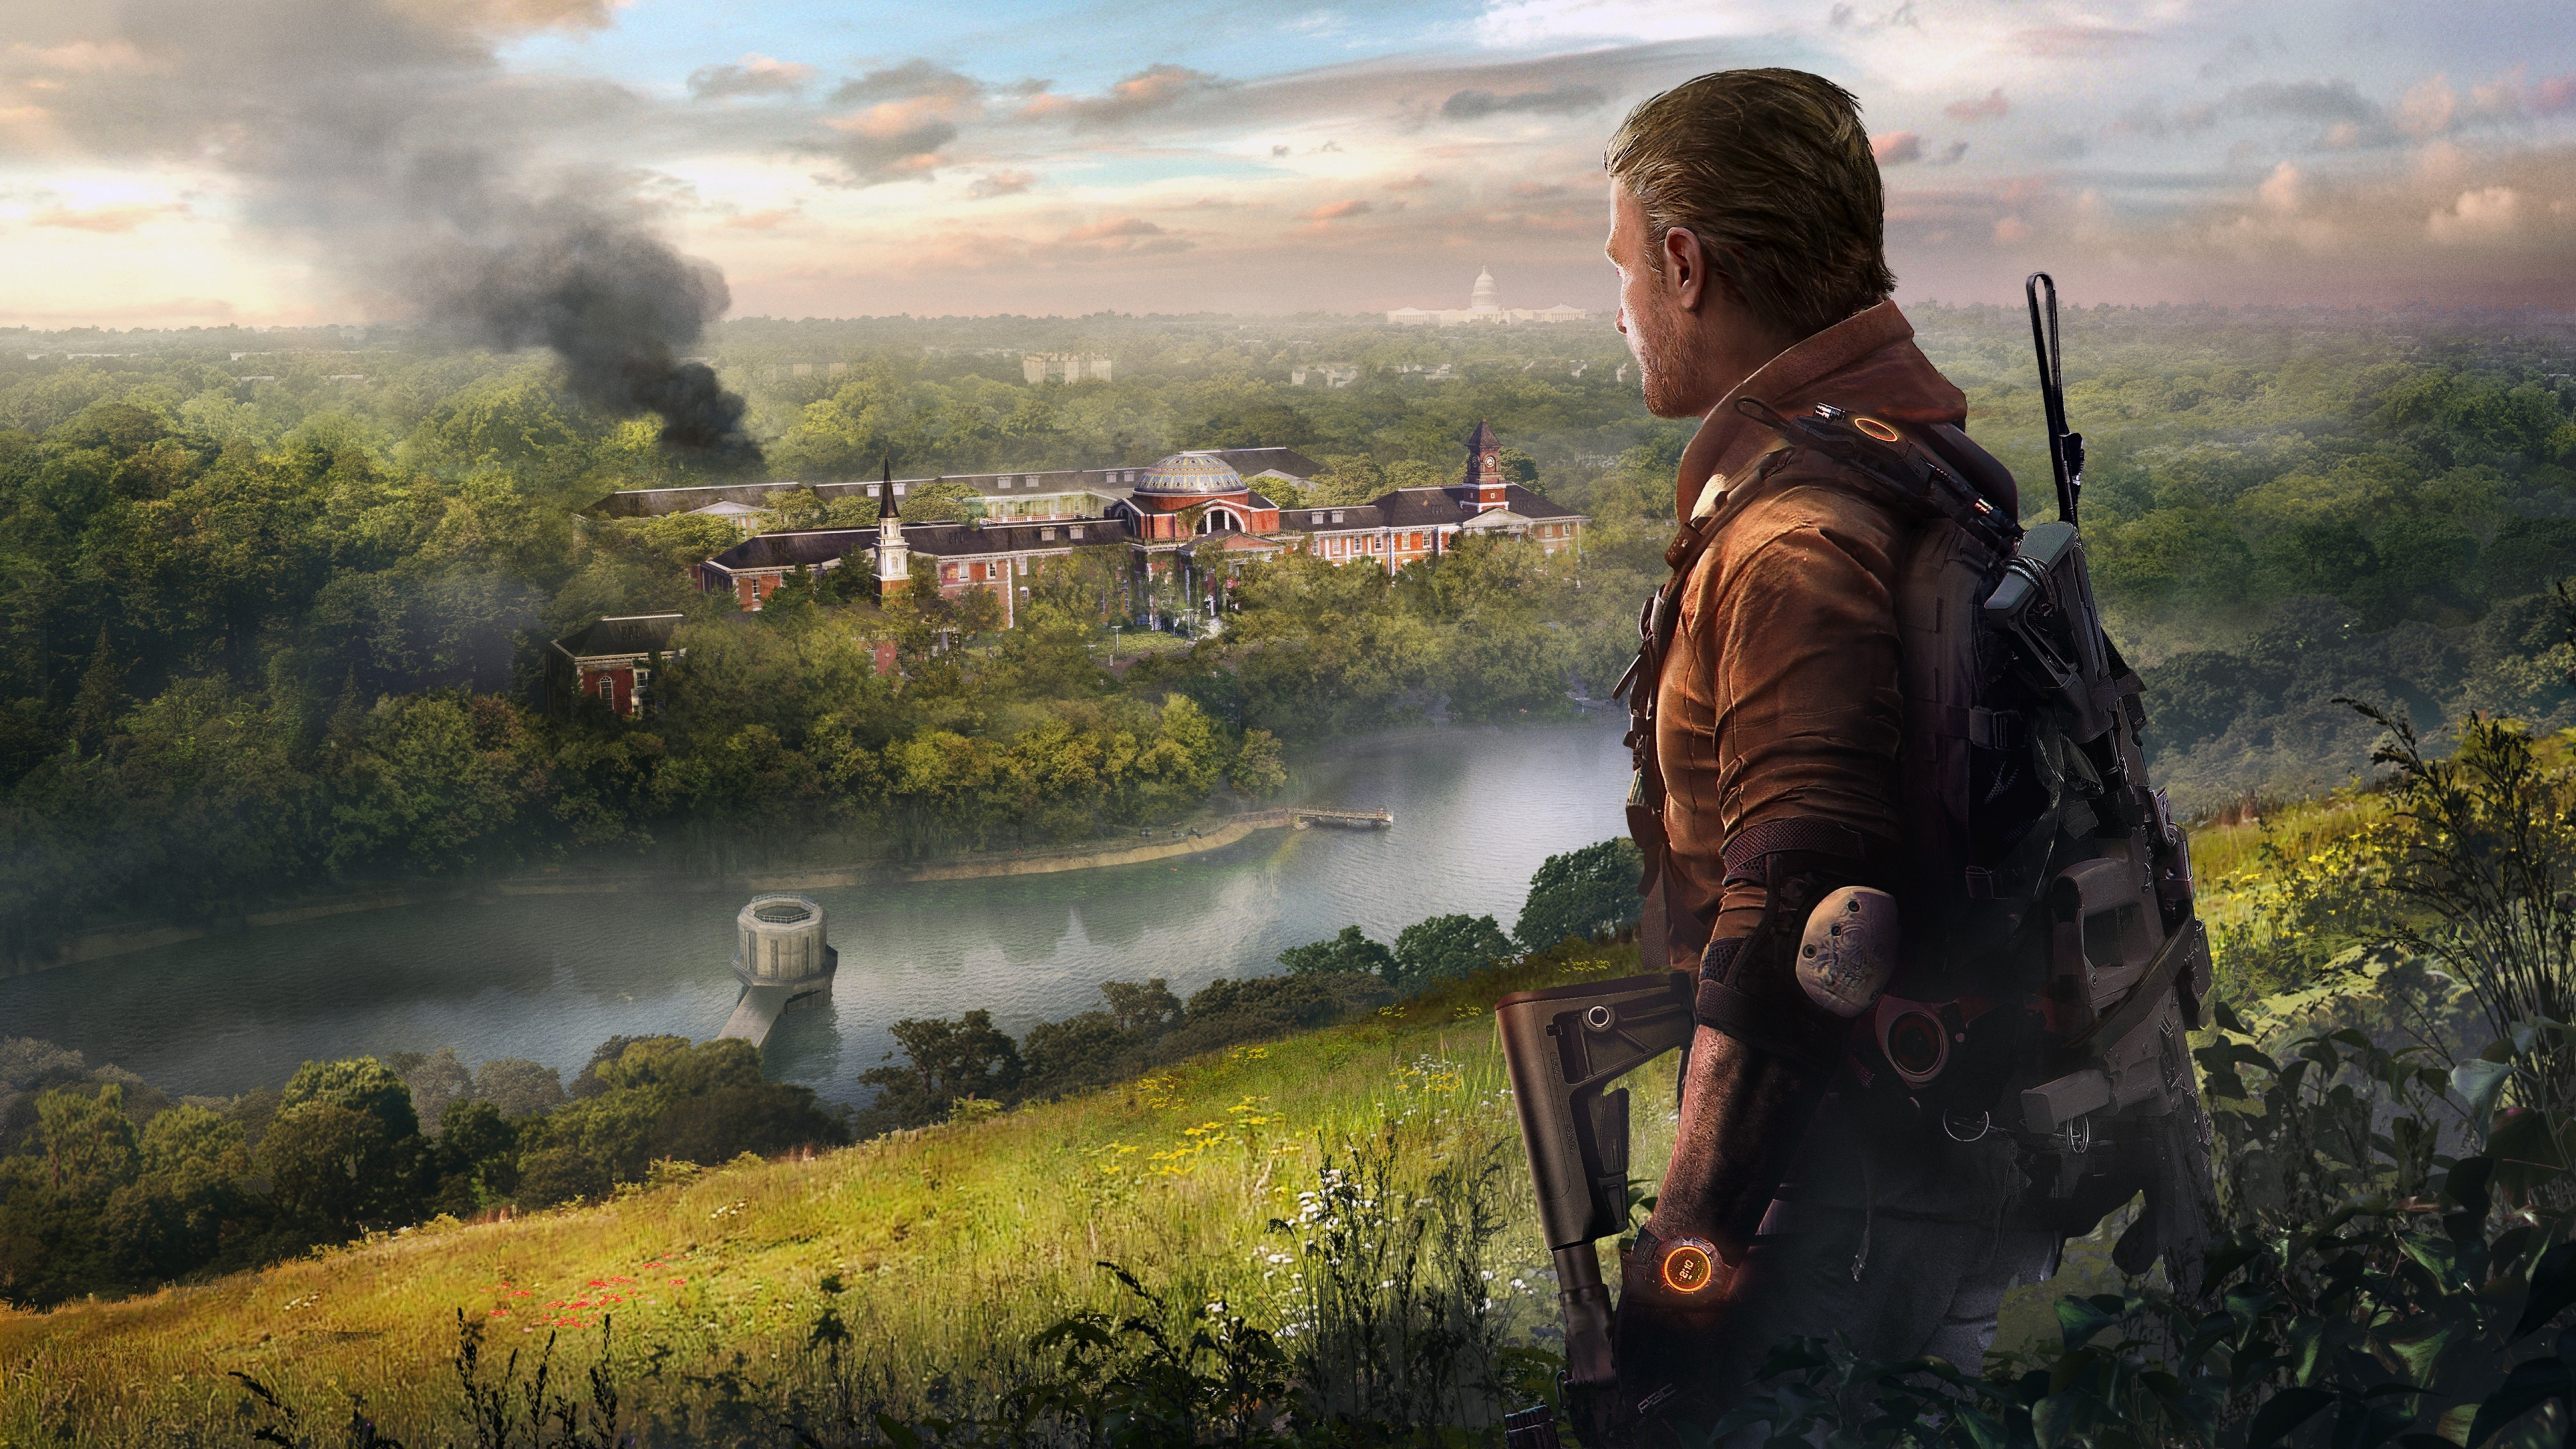 Tom Clancy S The Division 2 Episodes Wallpaper 5k Ultra Hd Id 4003